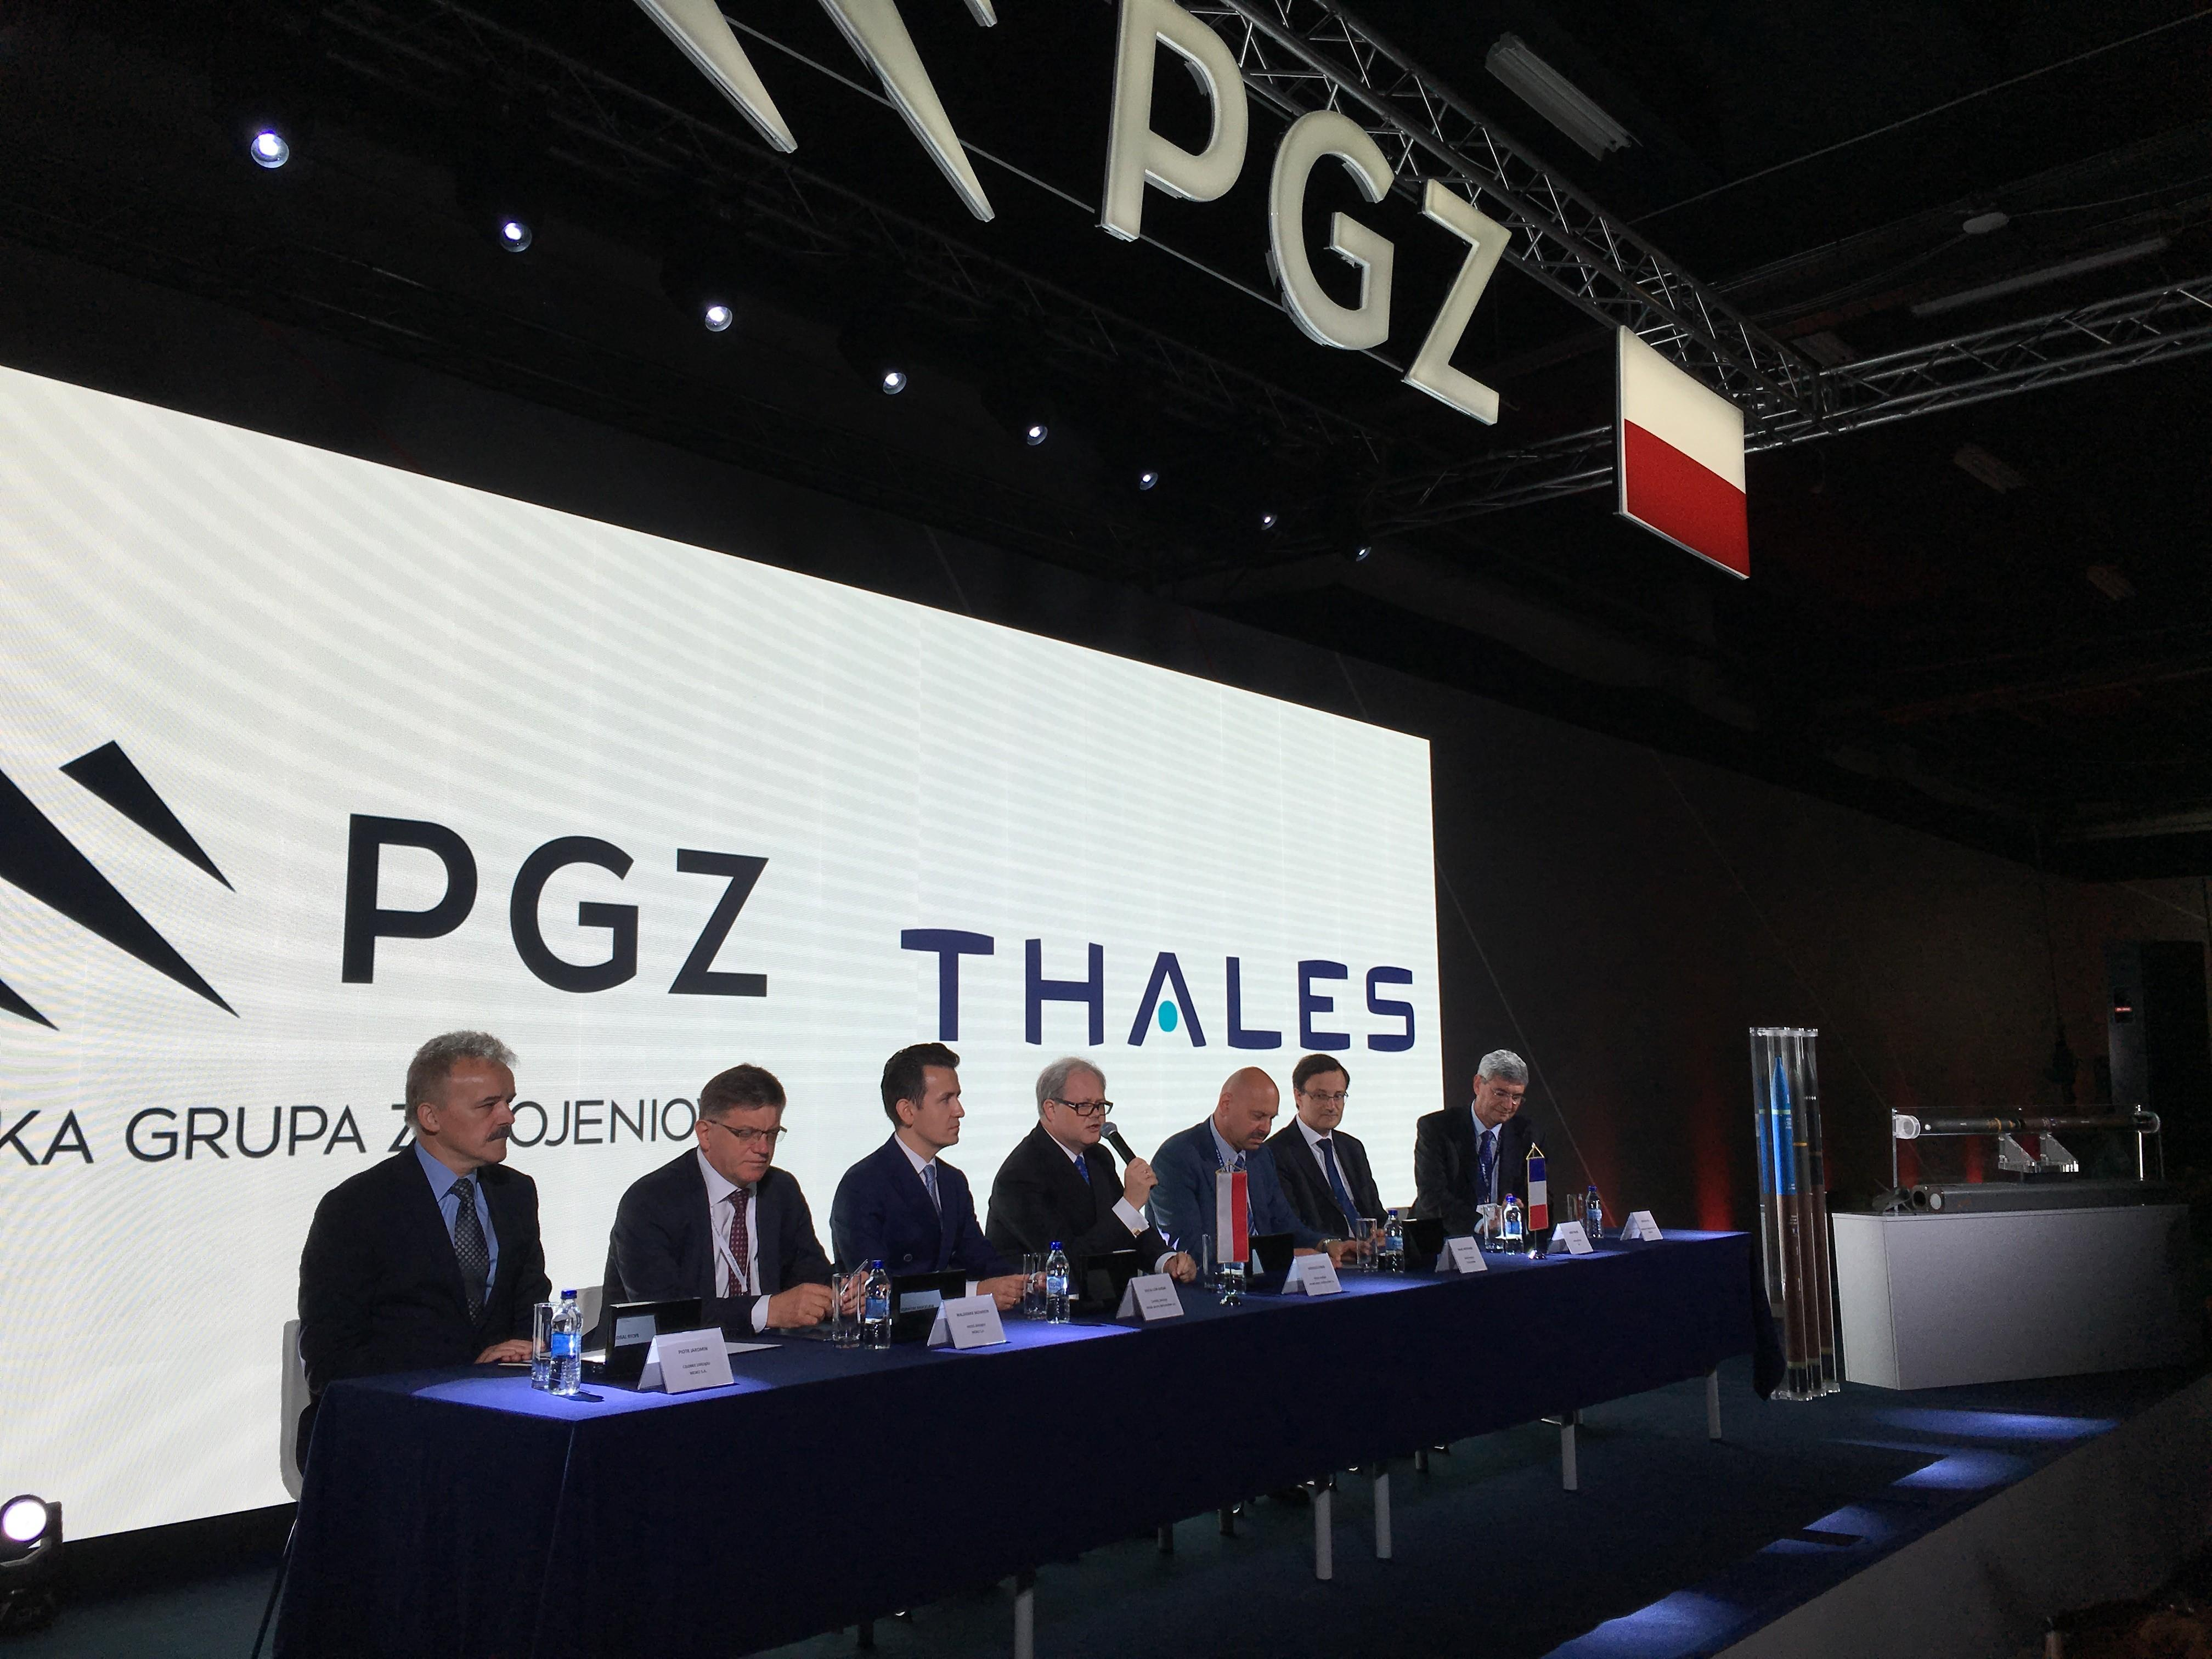 At MSPO 2016 PGZ and Thales announced induction rockets manufacturing partnership  - Thalesgroup